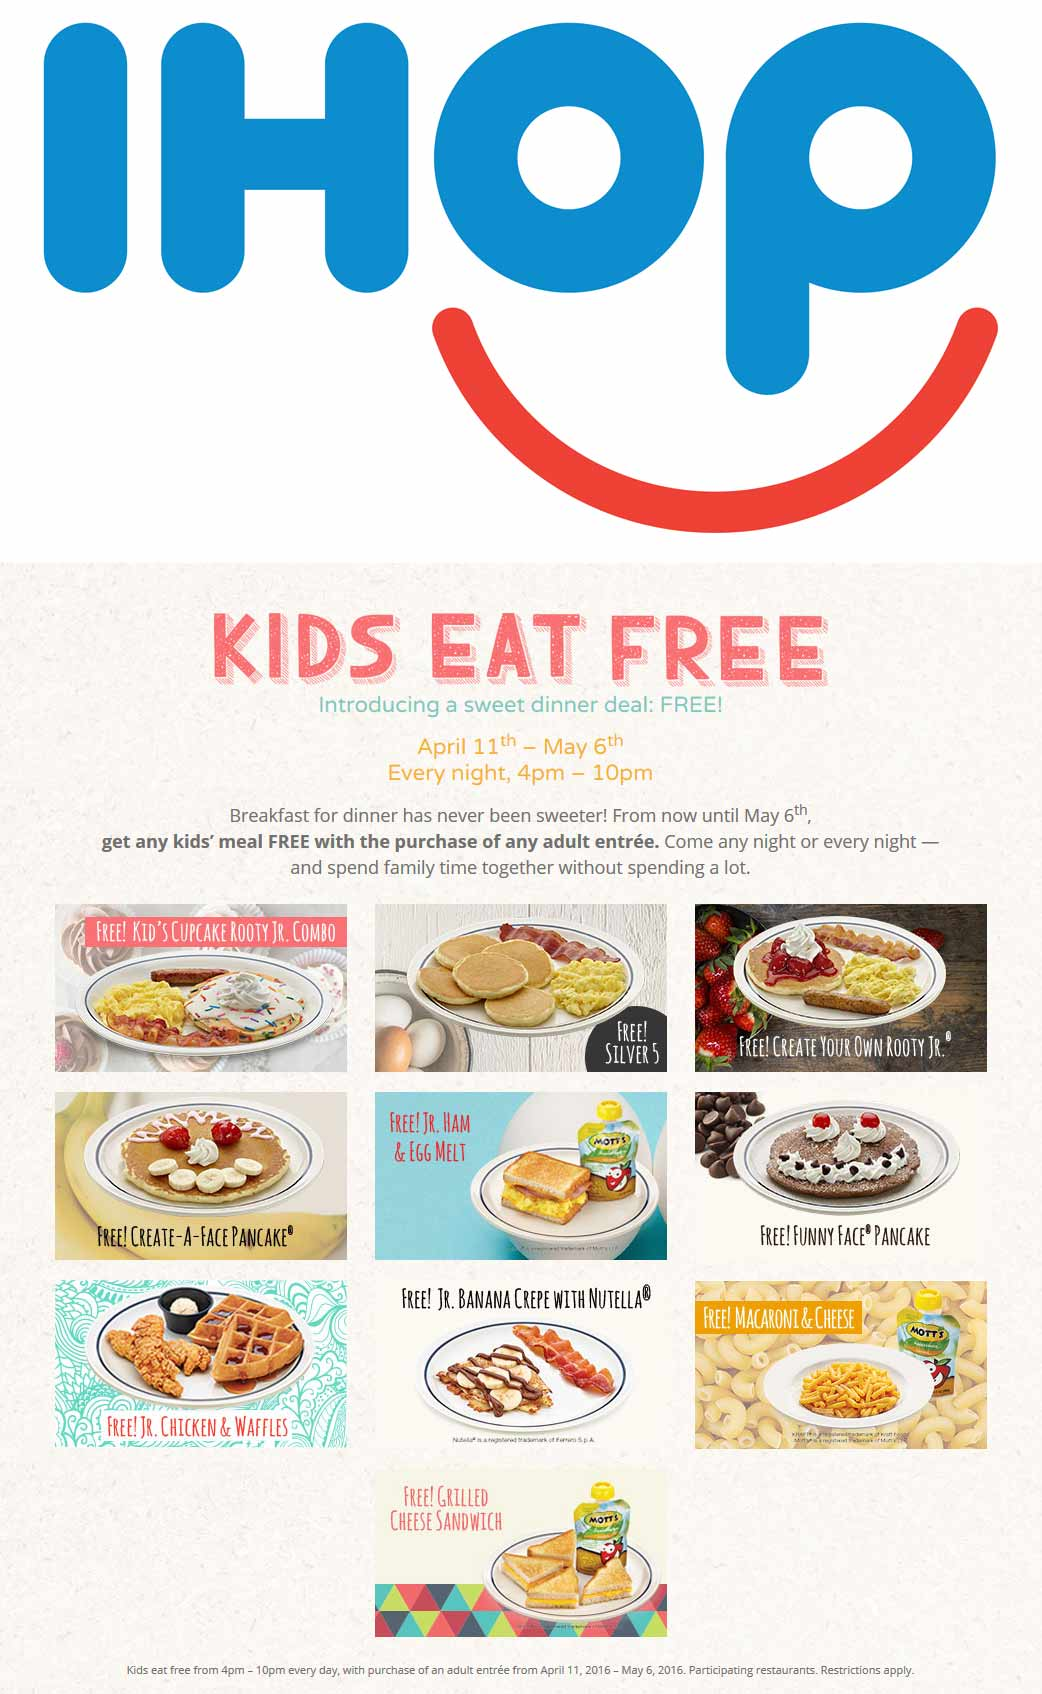 IHOP Coupon November 2017 Kids eat free with your meal 4-10pm daily at IHOP